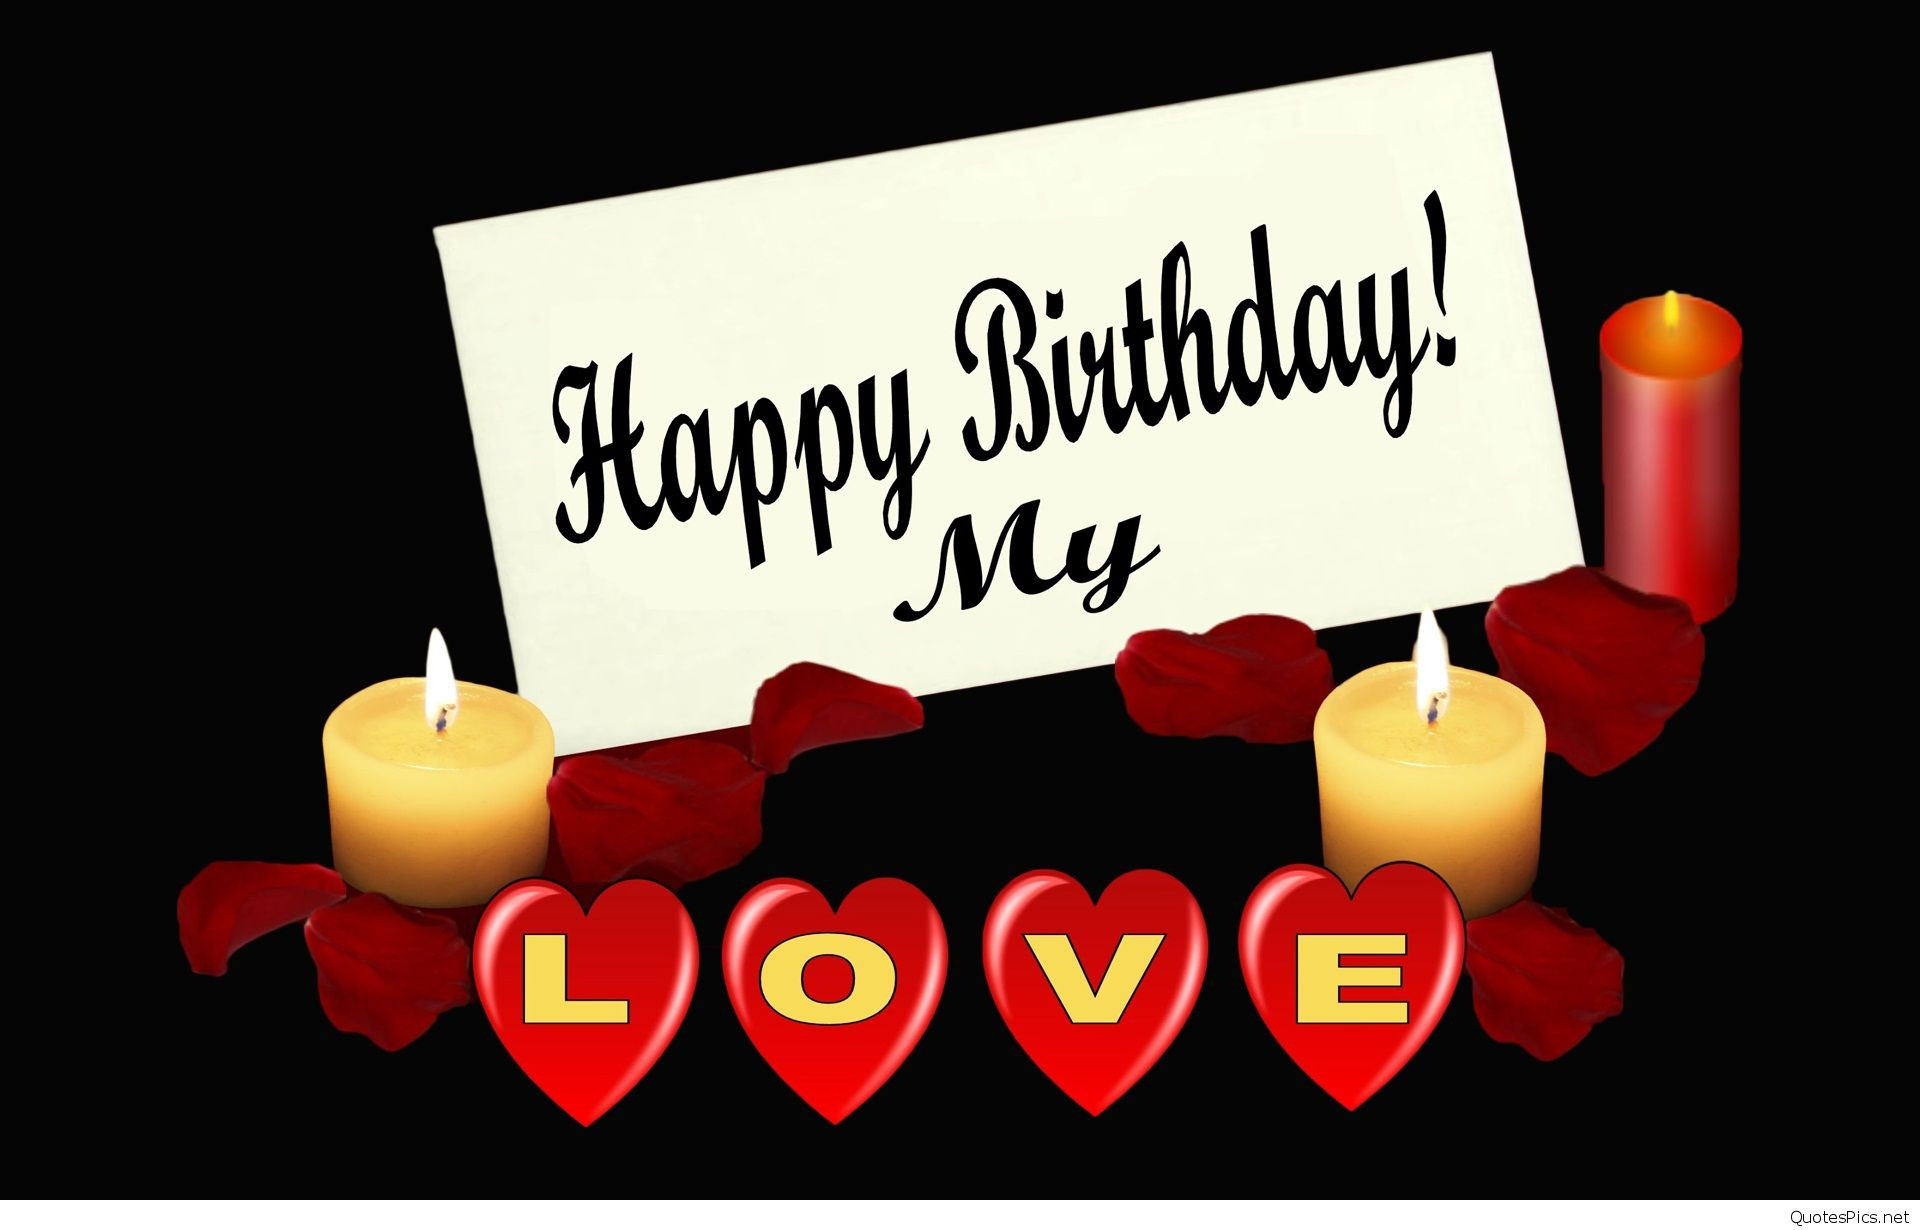 Best ideas about Happy Birthday Wishes For Lover . Save or Pin Happy birthday my love cards & photos 2016 2017 Now.